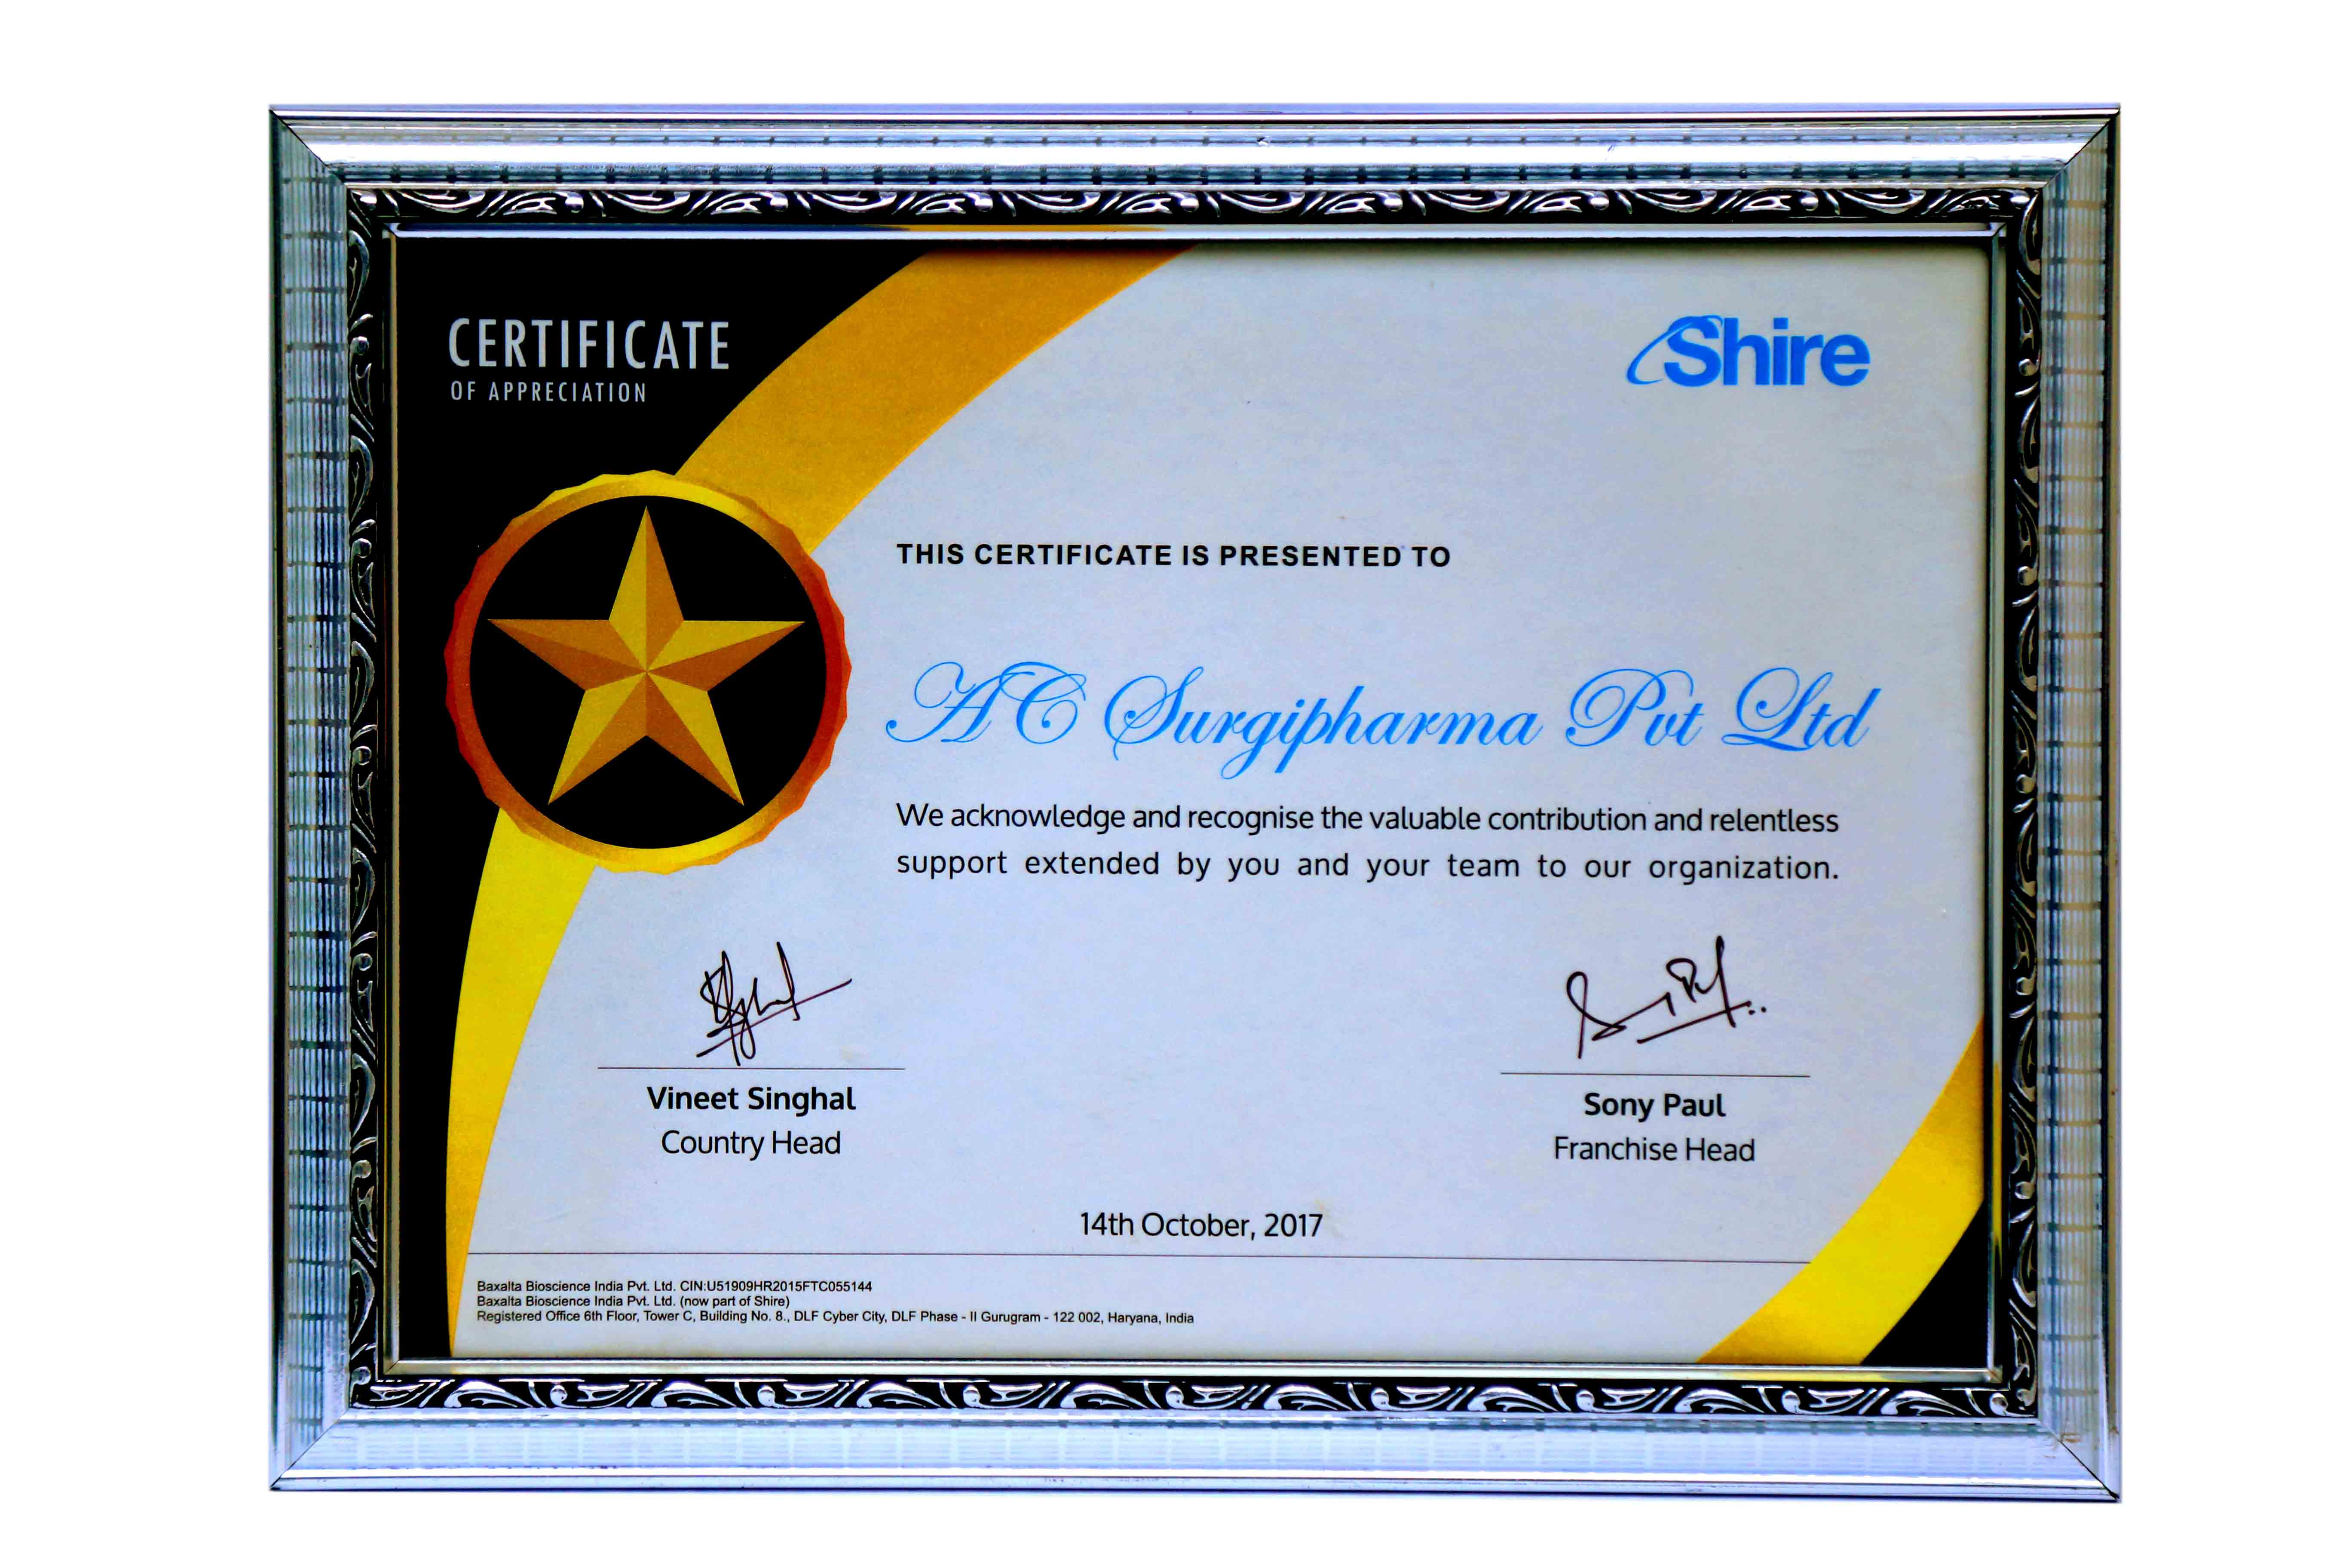 Certificate of Appreciation By Shire